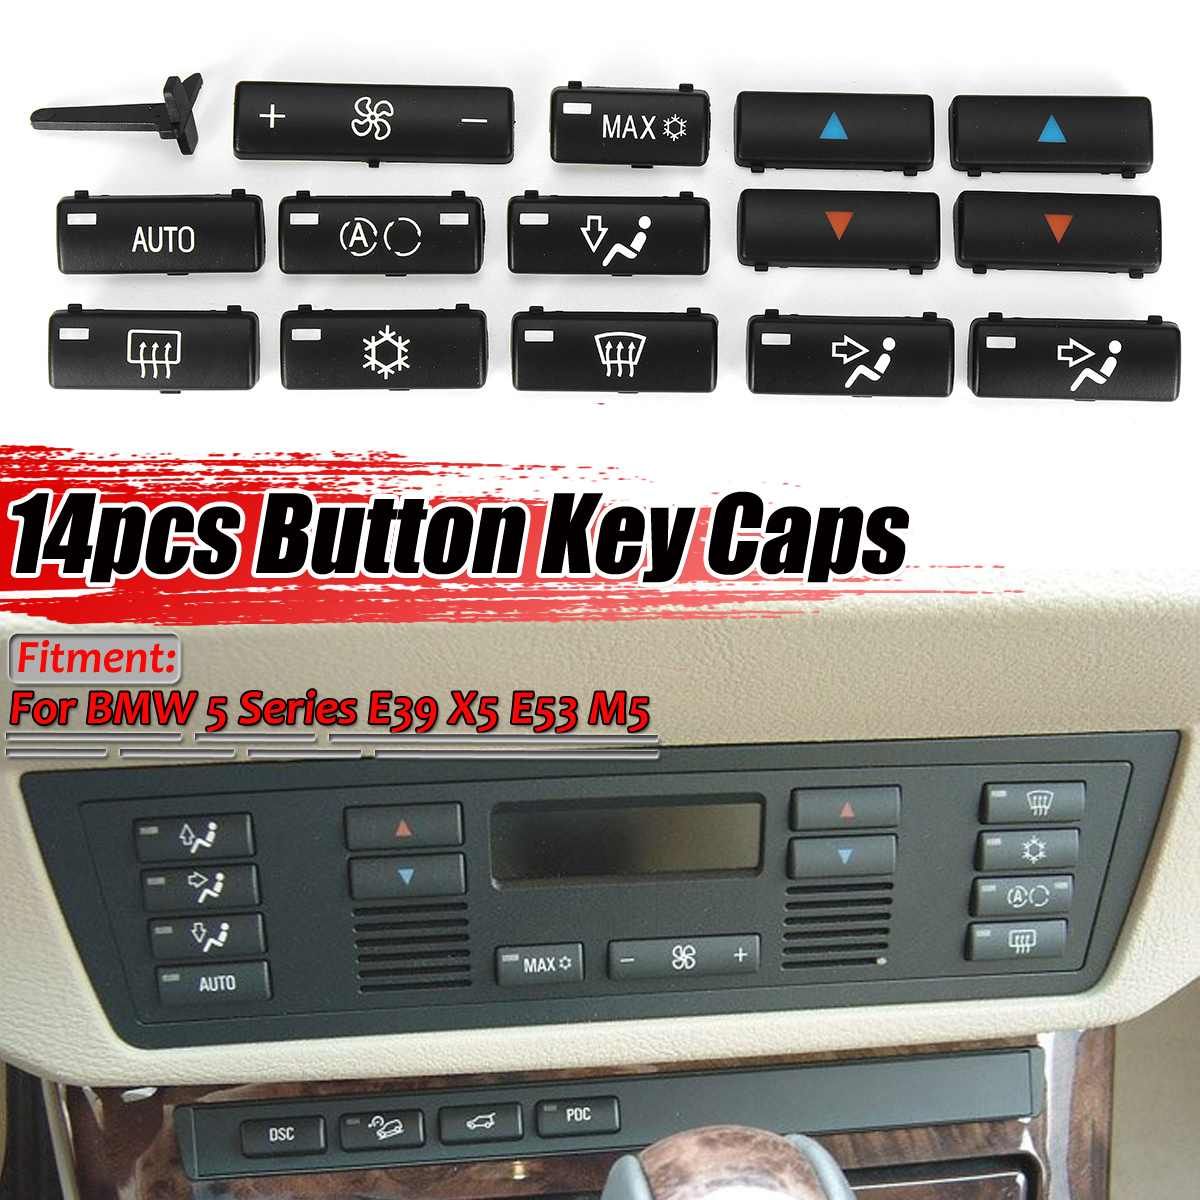 New <font><b>14</b></font> Button <font><b>Key</b></font> <font><b>Caps</b></font> Replacement Climate A/C Control Control Panel Switch Buttons Cover For BMW E39 E53 525i 530i 540i M5 X5 image